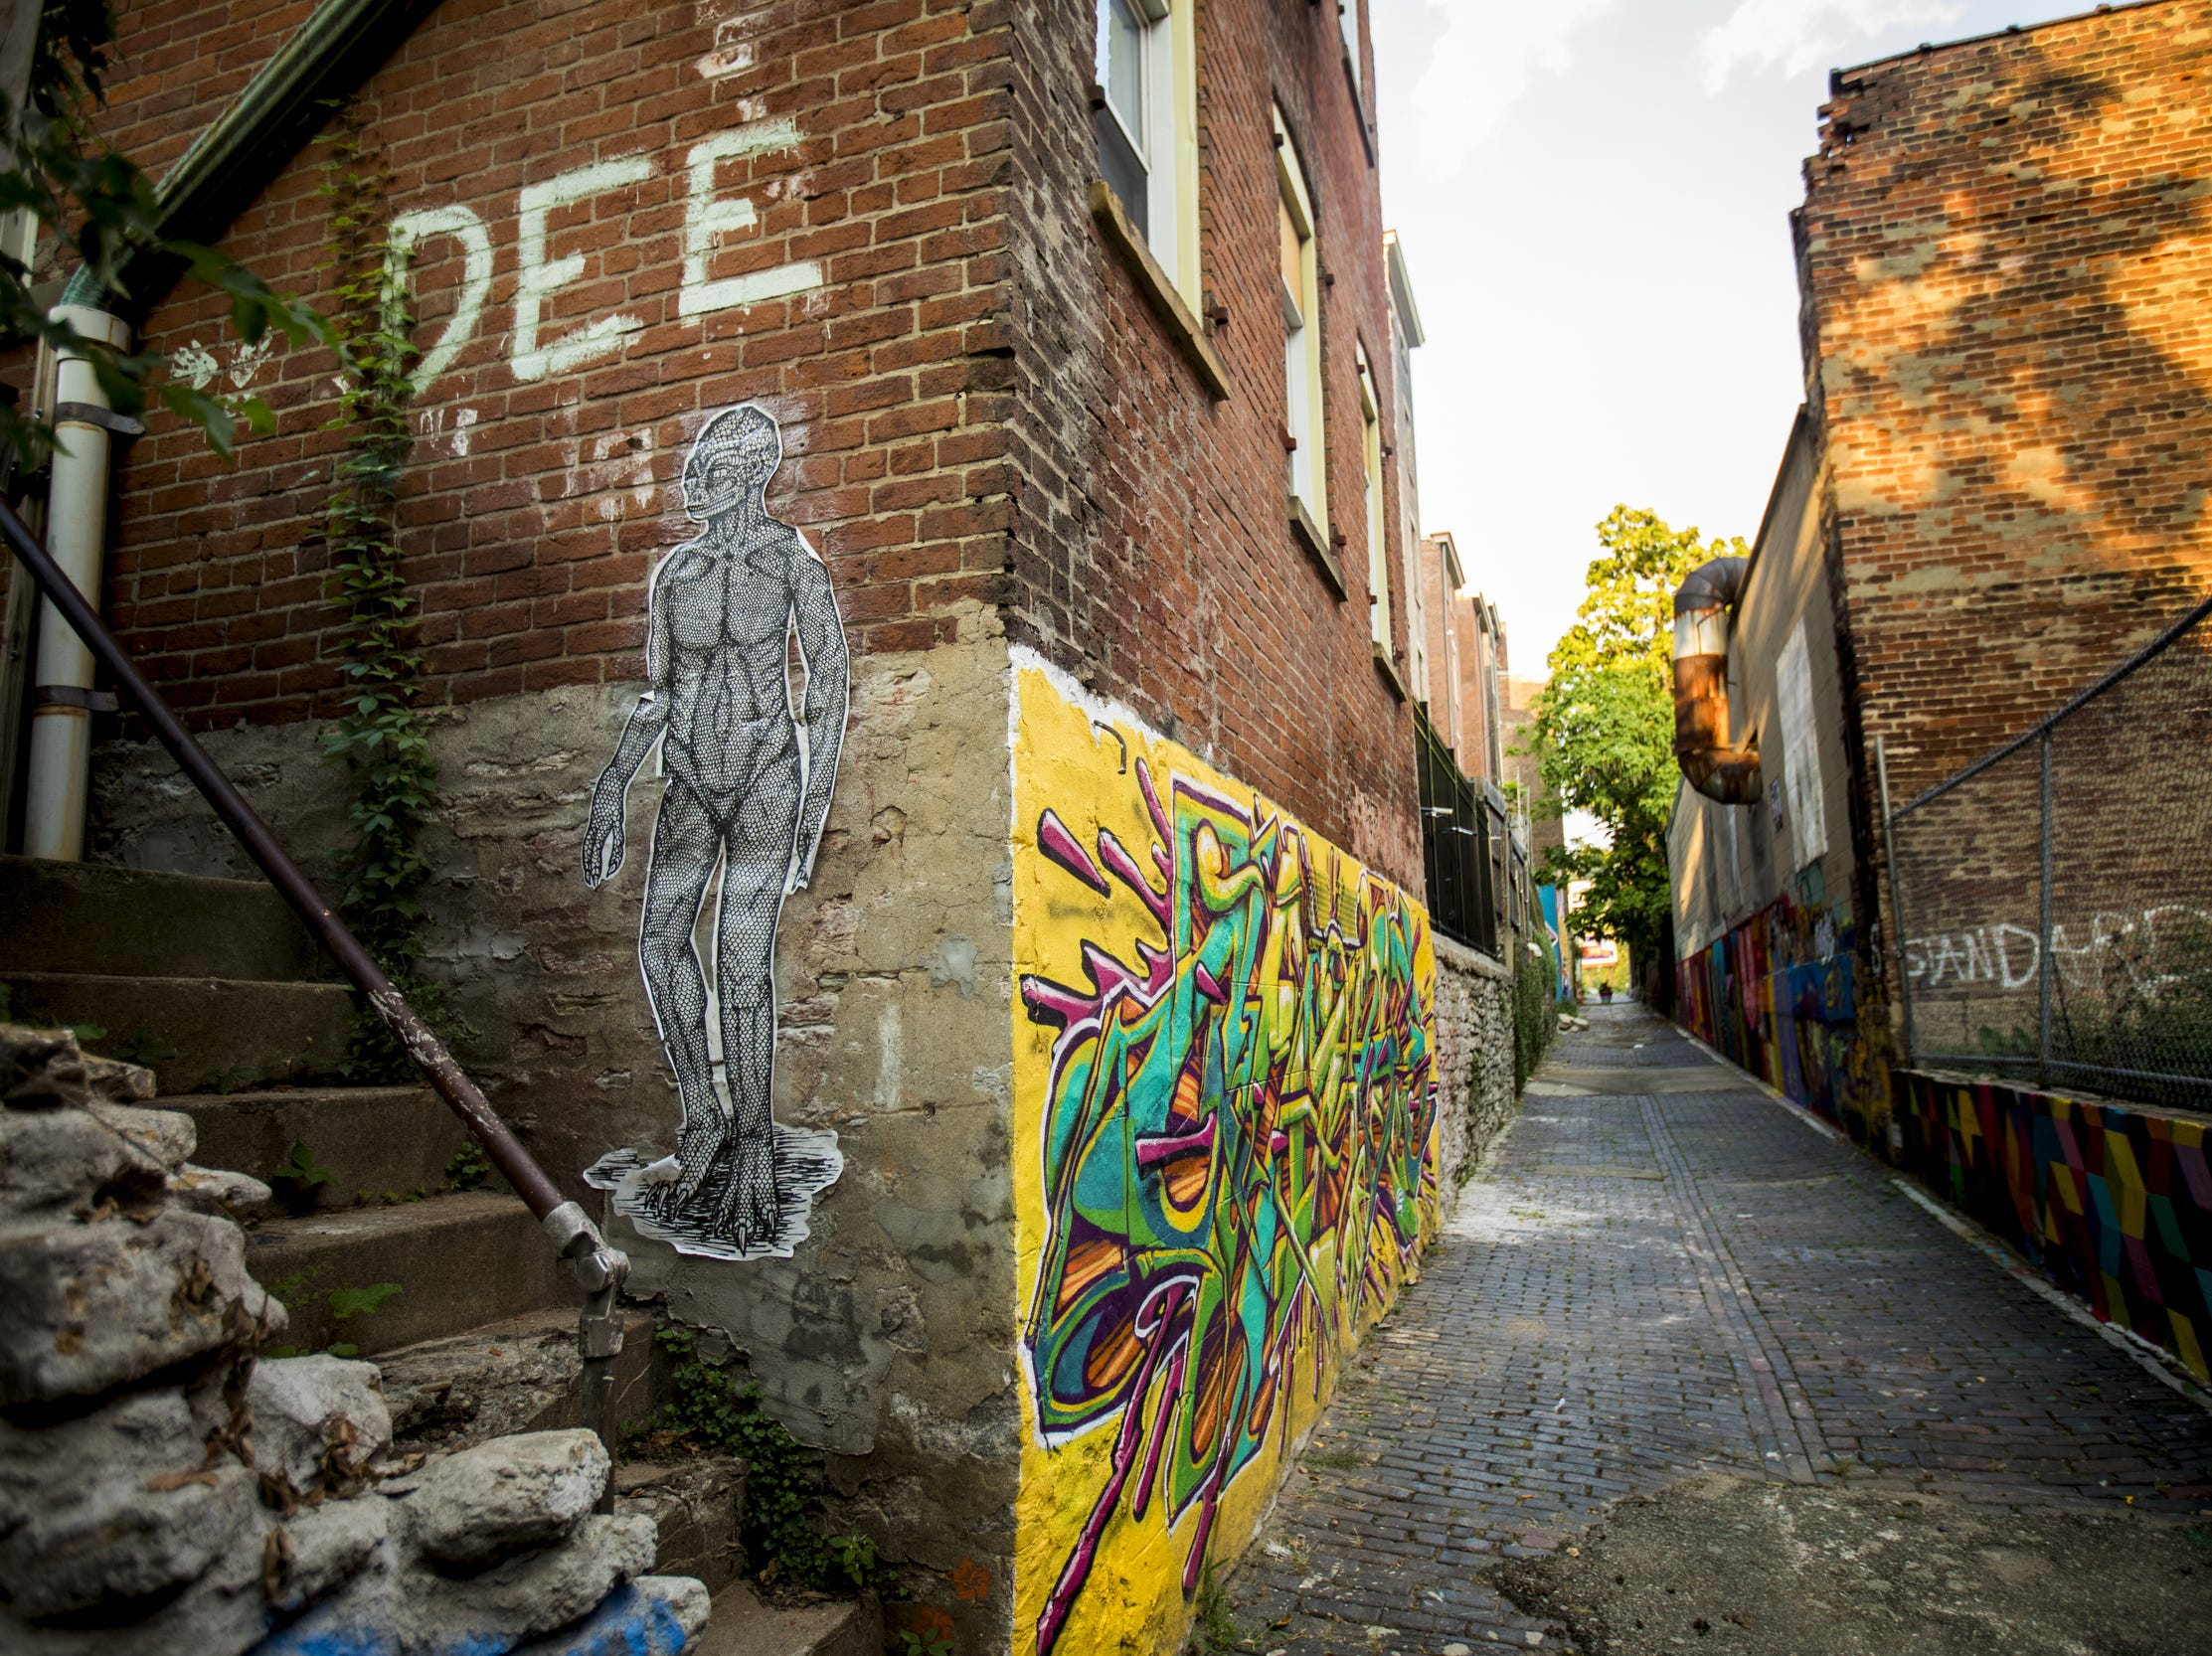 ArtWorks added 14 murals to Bolivar Alley in Pendleton.